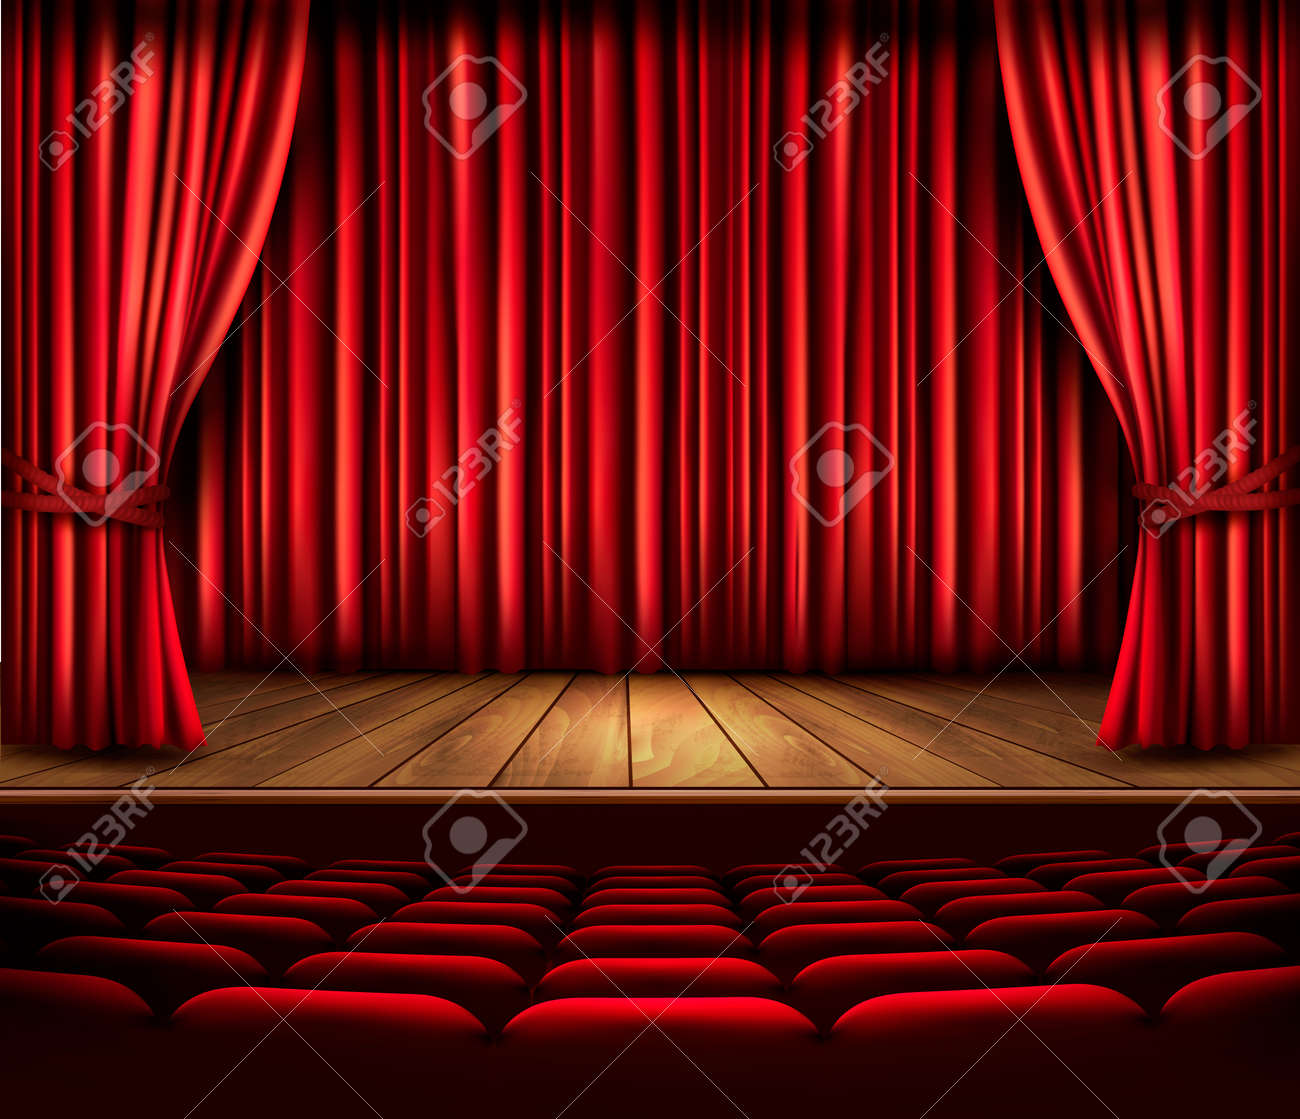 Red curtain spotlight - A Theater Stage With A Red Curtain Seats And A Spotlight Vector Stock